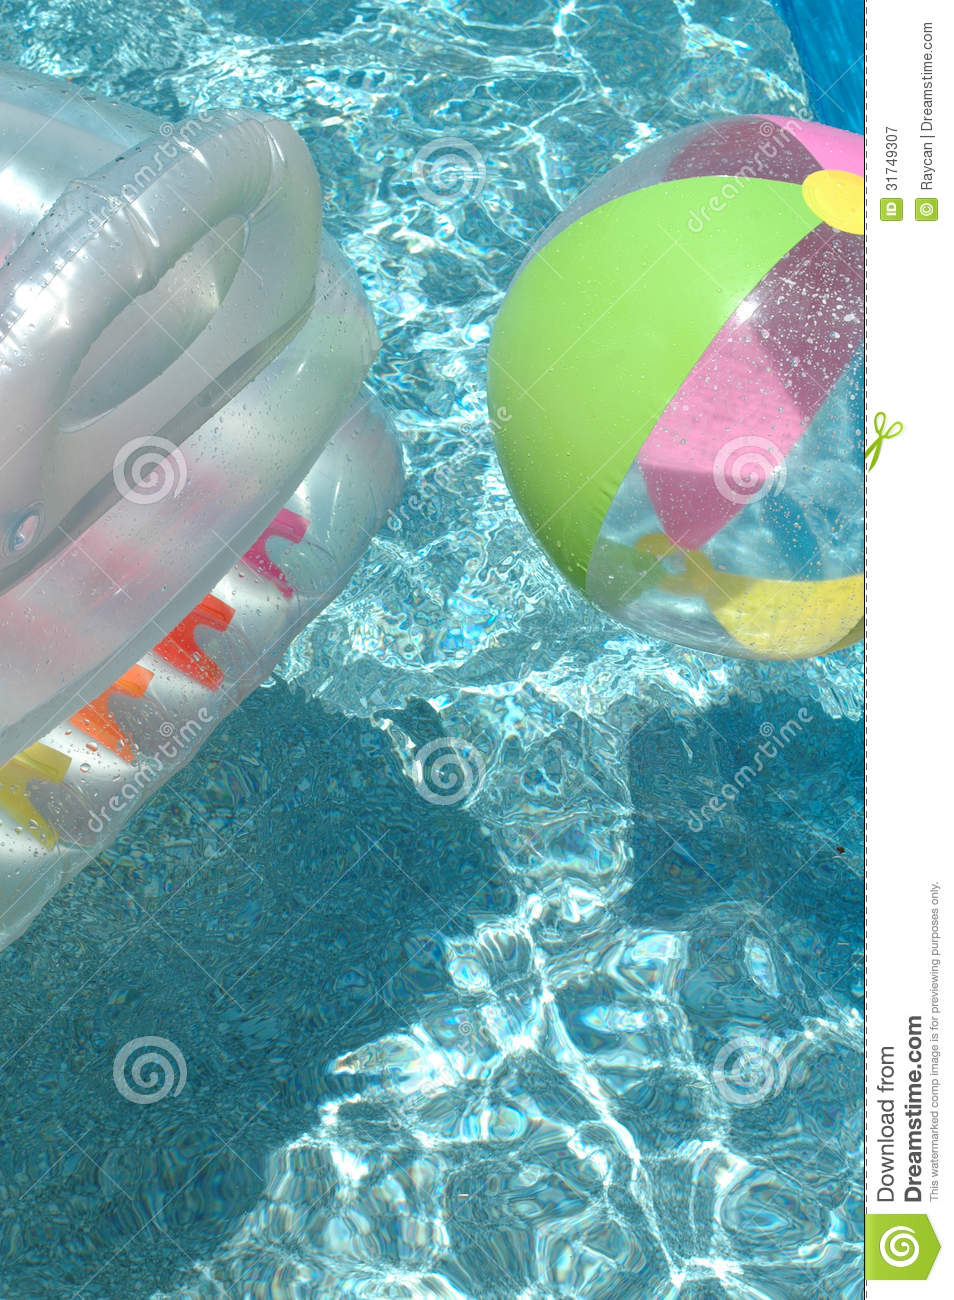 Download Pool Details stock image. Image of drift, objects, decor - 31749307